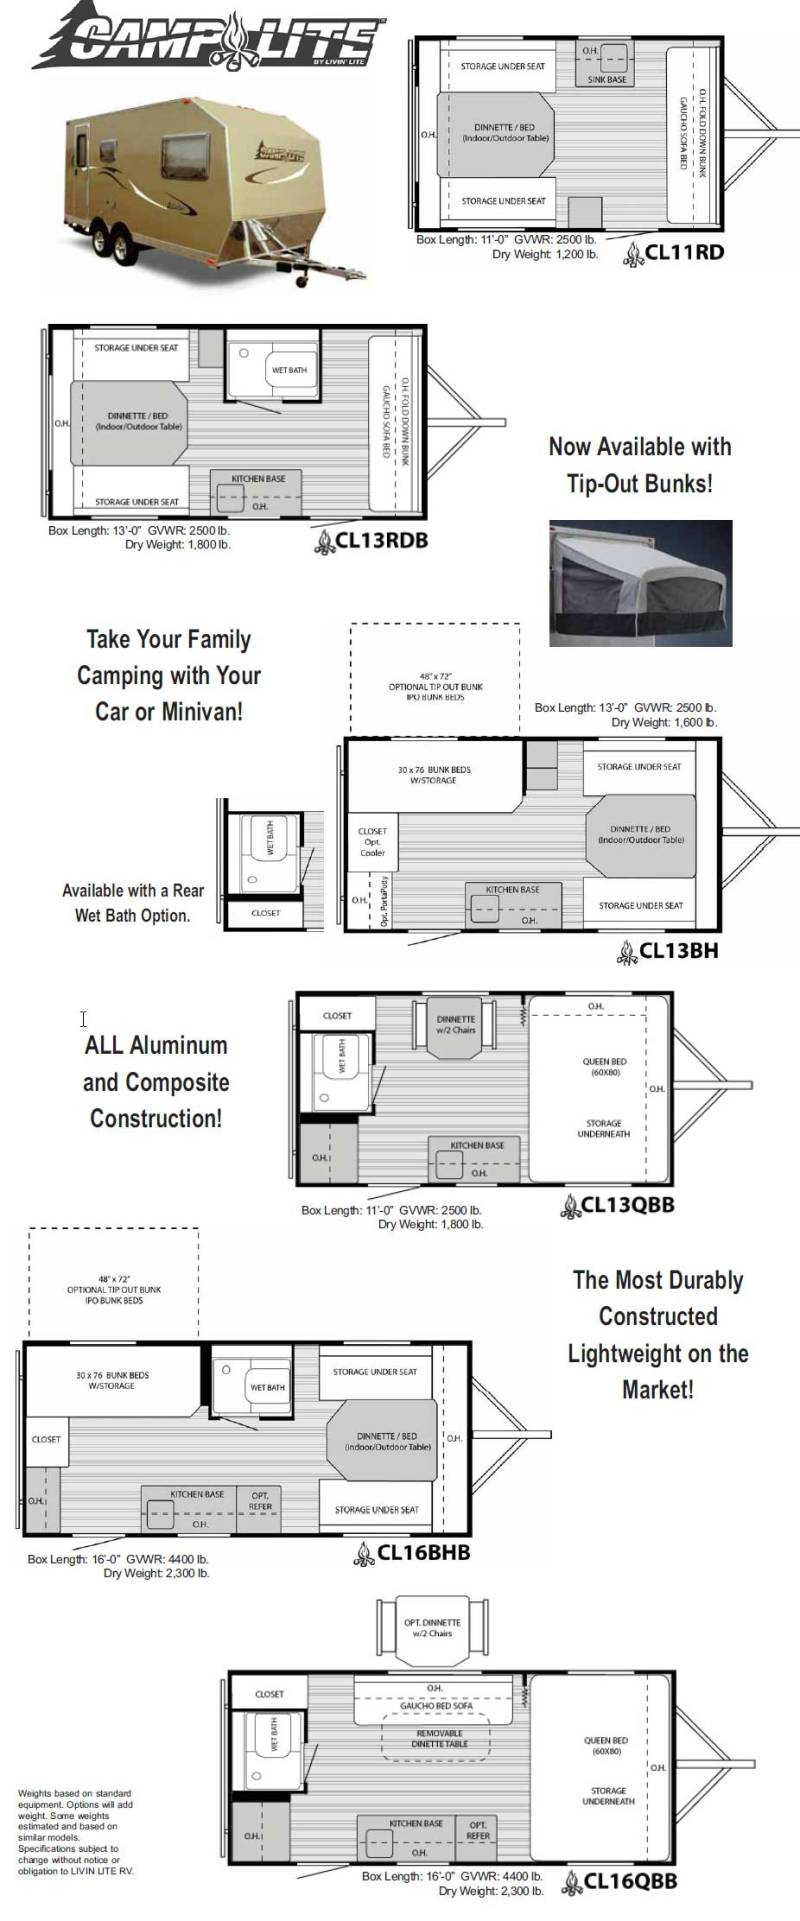 1999 fleetwood rv floor plans